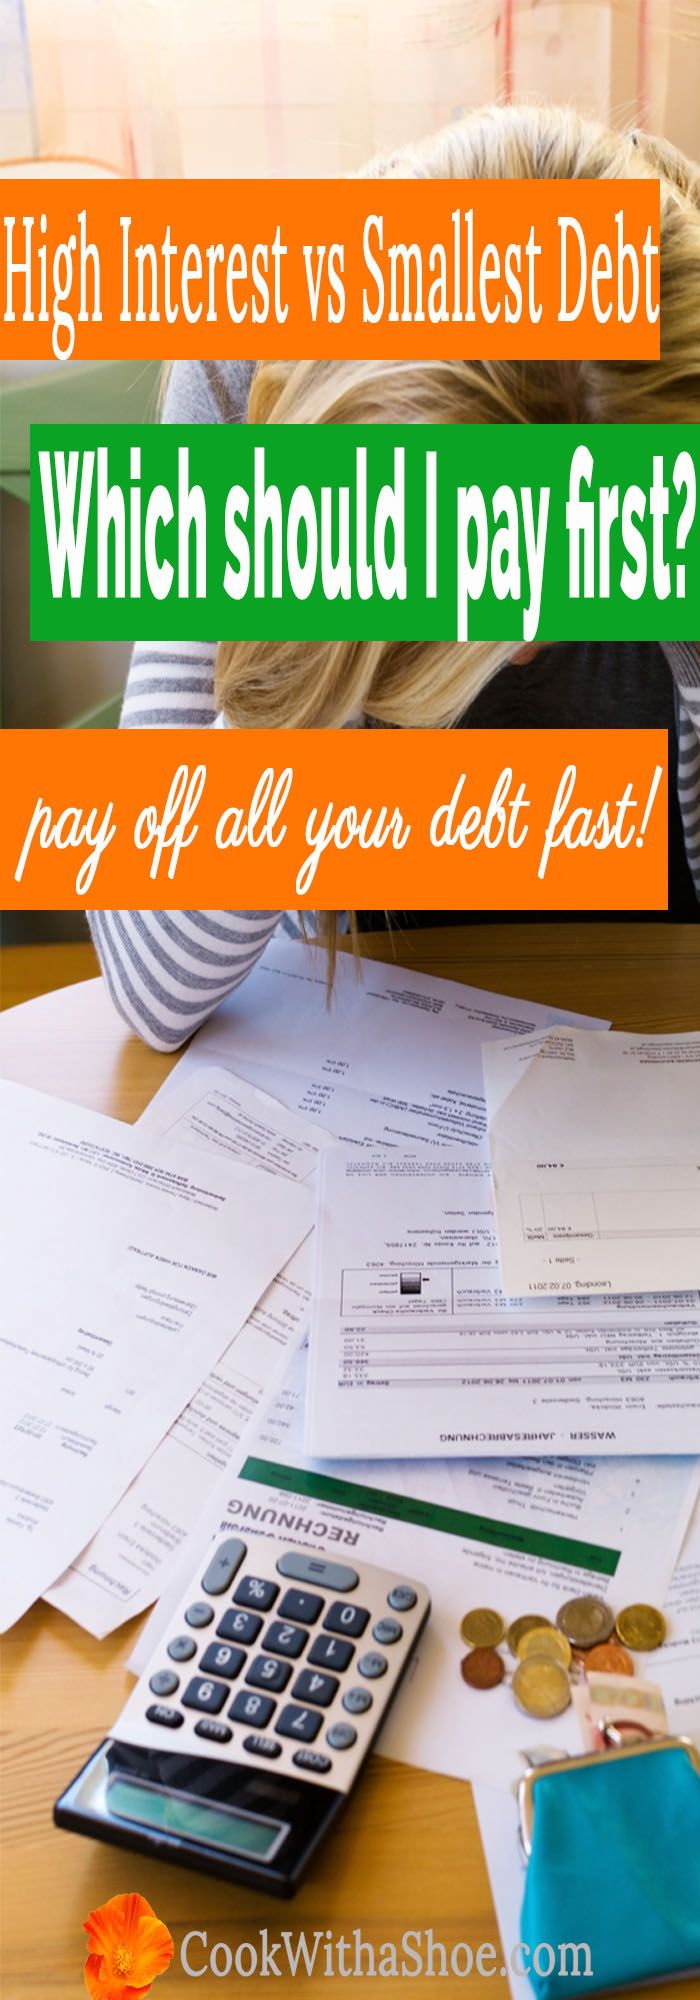 Which debt do I pay first | debt snowball | highest interest debt vs smallest debt first | debt free | paying off debt | pay off debt fast | how to pay off debt fast | Cook With a Shoe